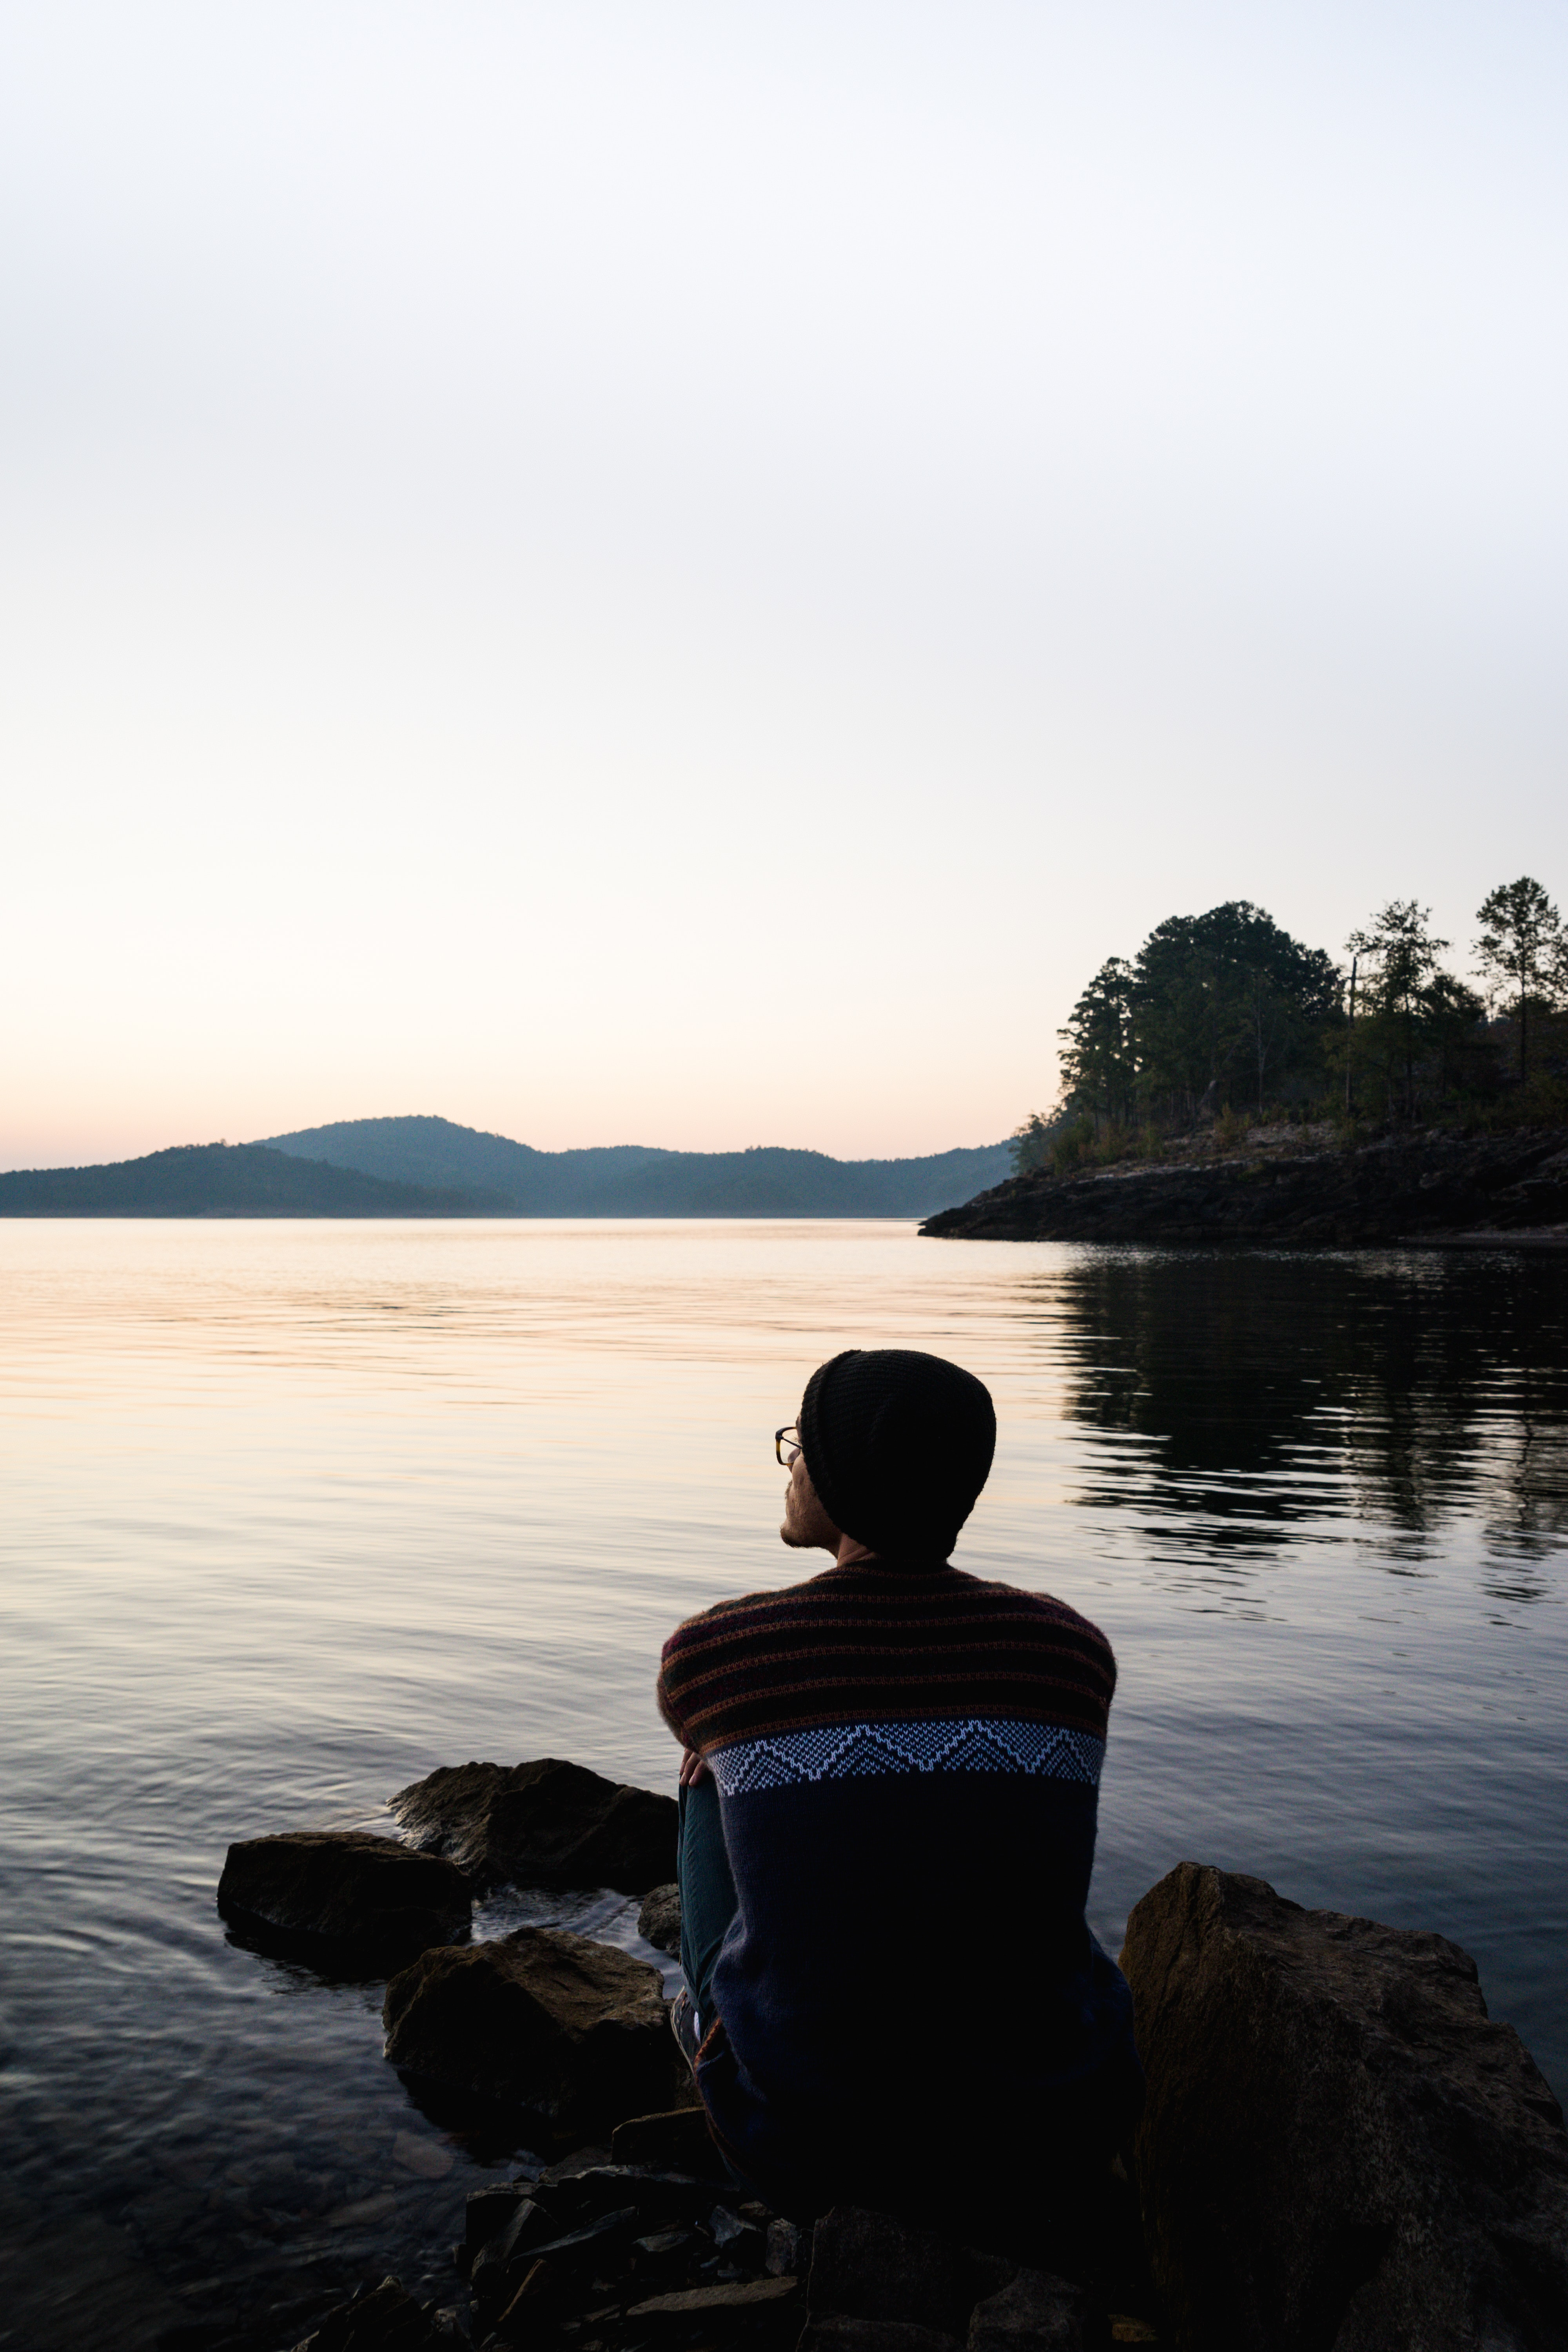 person sitting on rock near body of water